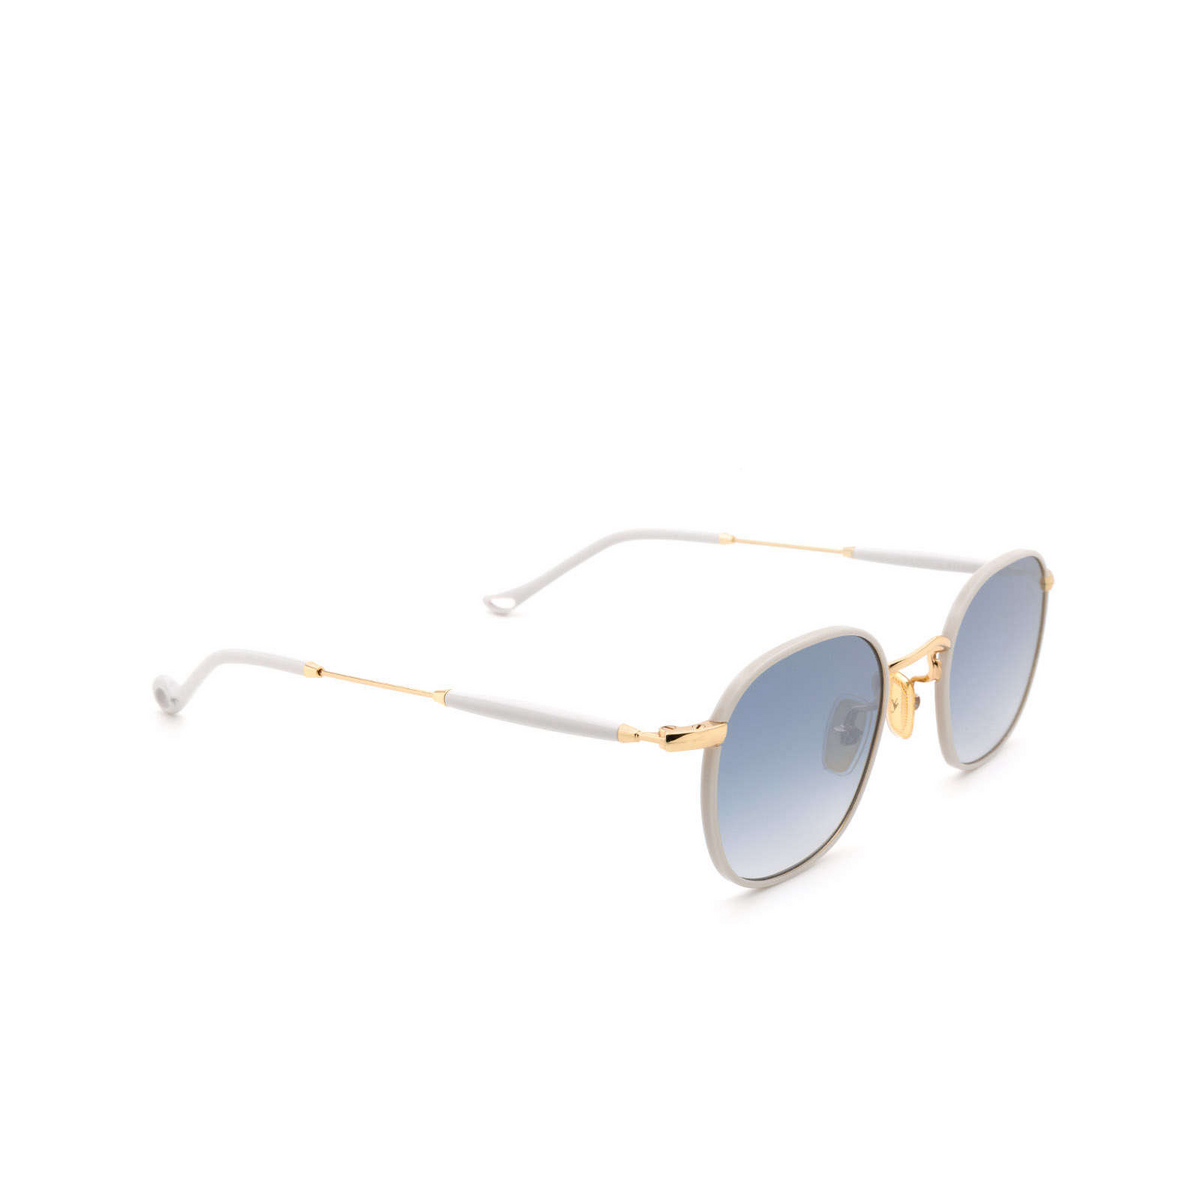 Eyepetizer® Square Sunglasses: Trois color Ice Grey C.4-D-S-26F - three-quarters view.